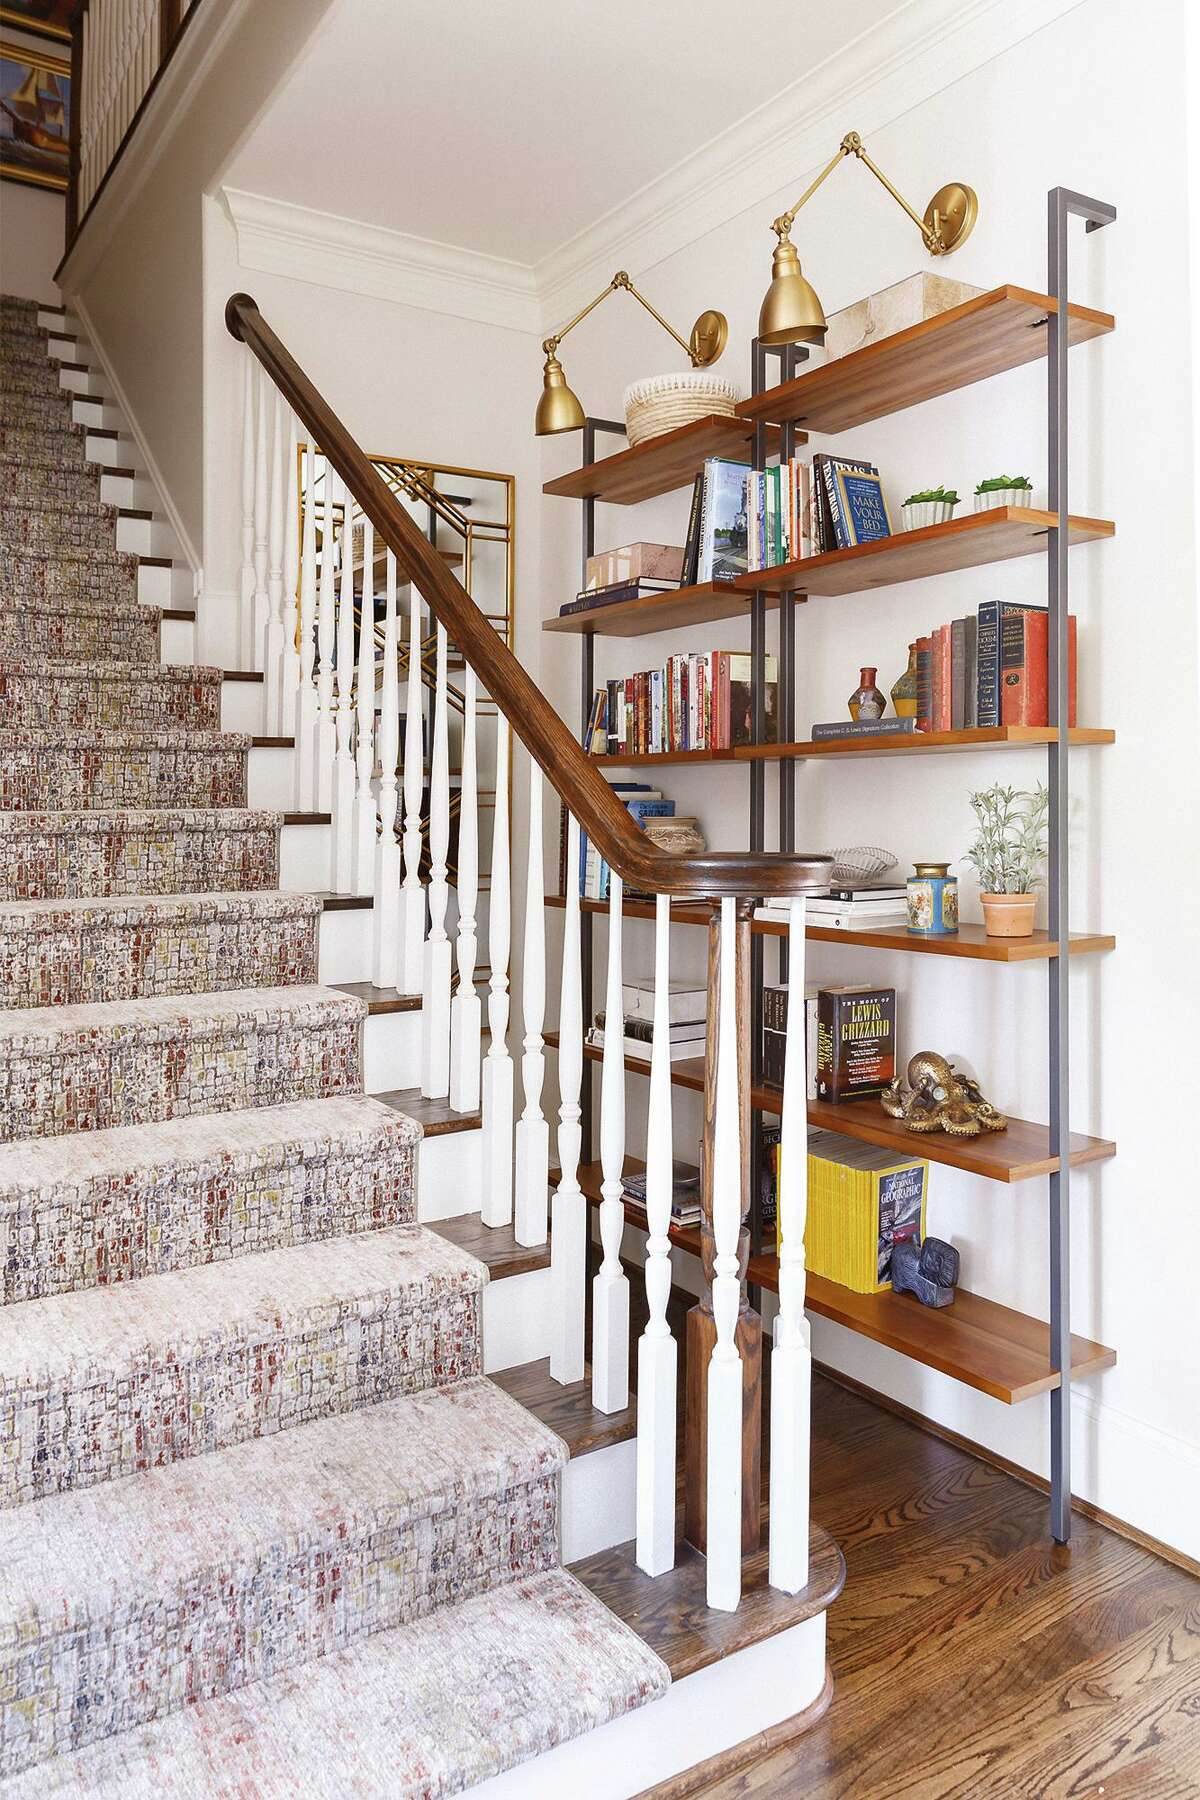 A narrow dead-end alongside a staircase was used for a stack of shelves that displayed a family's books and mementos.